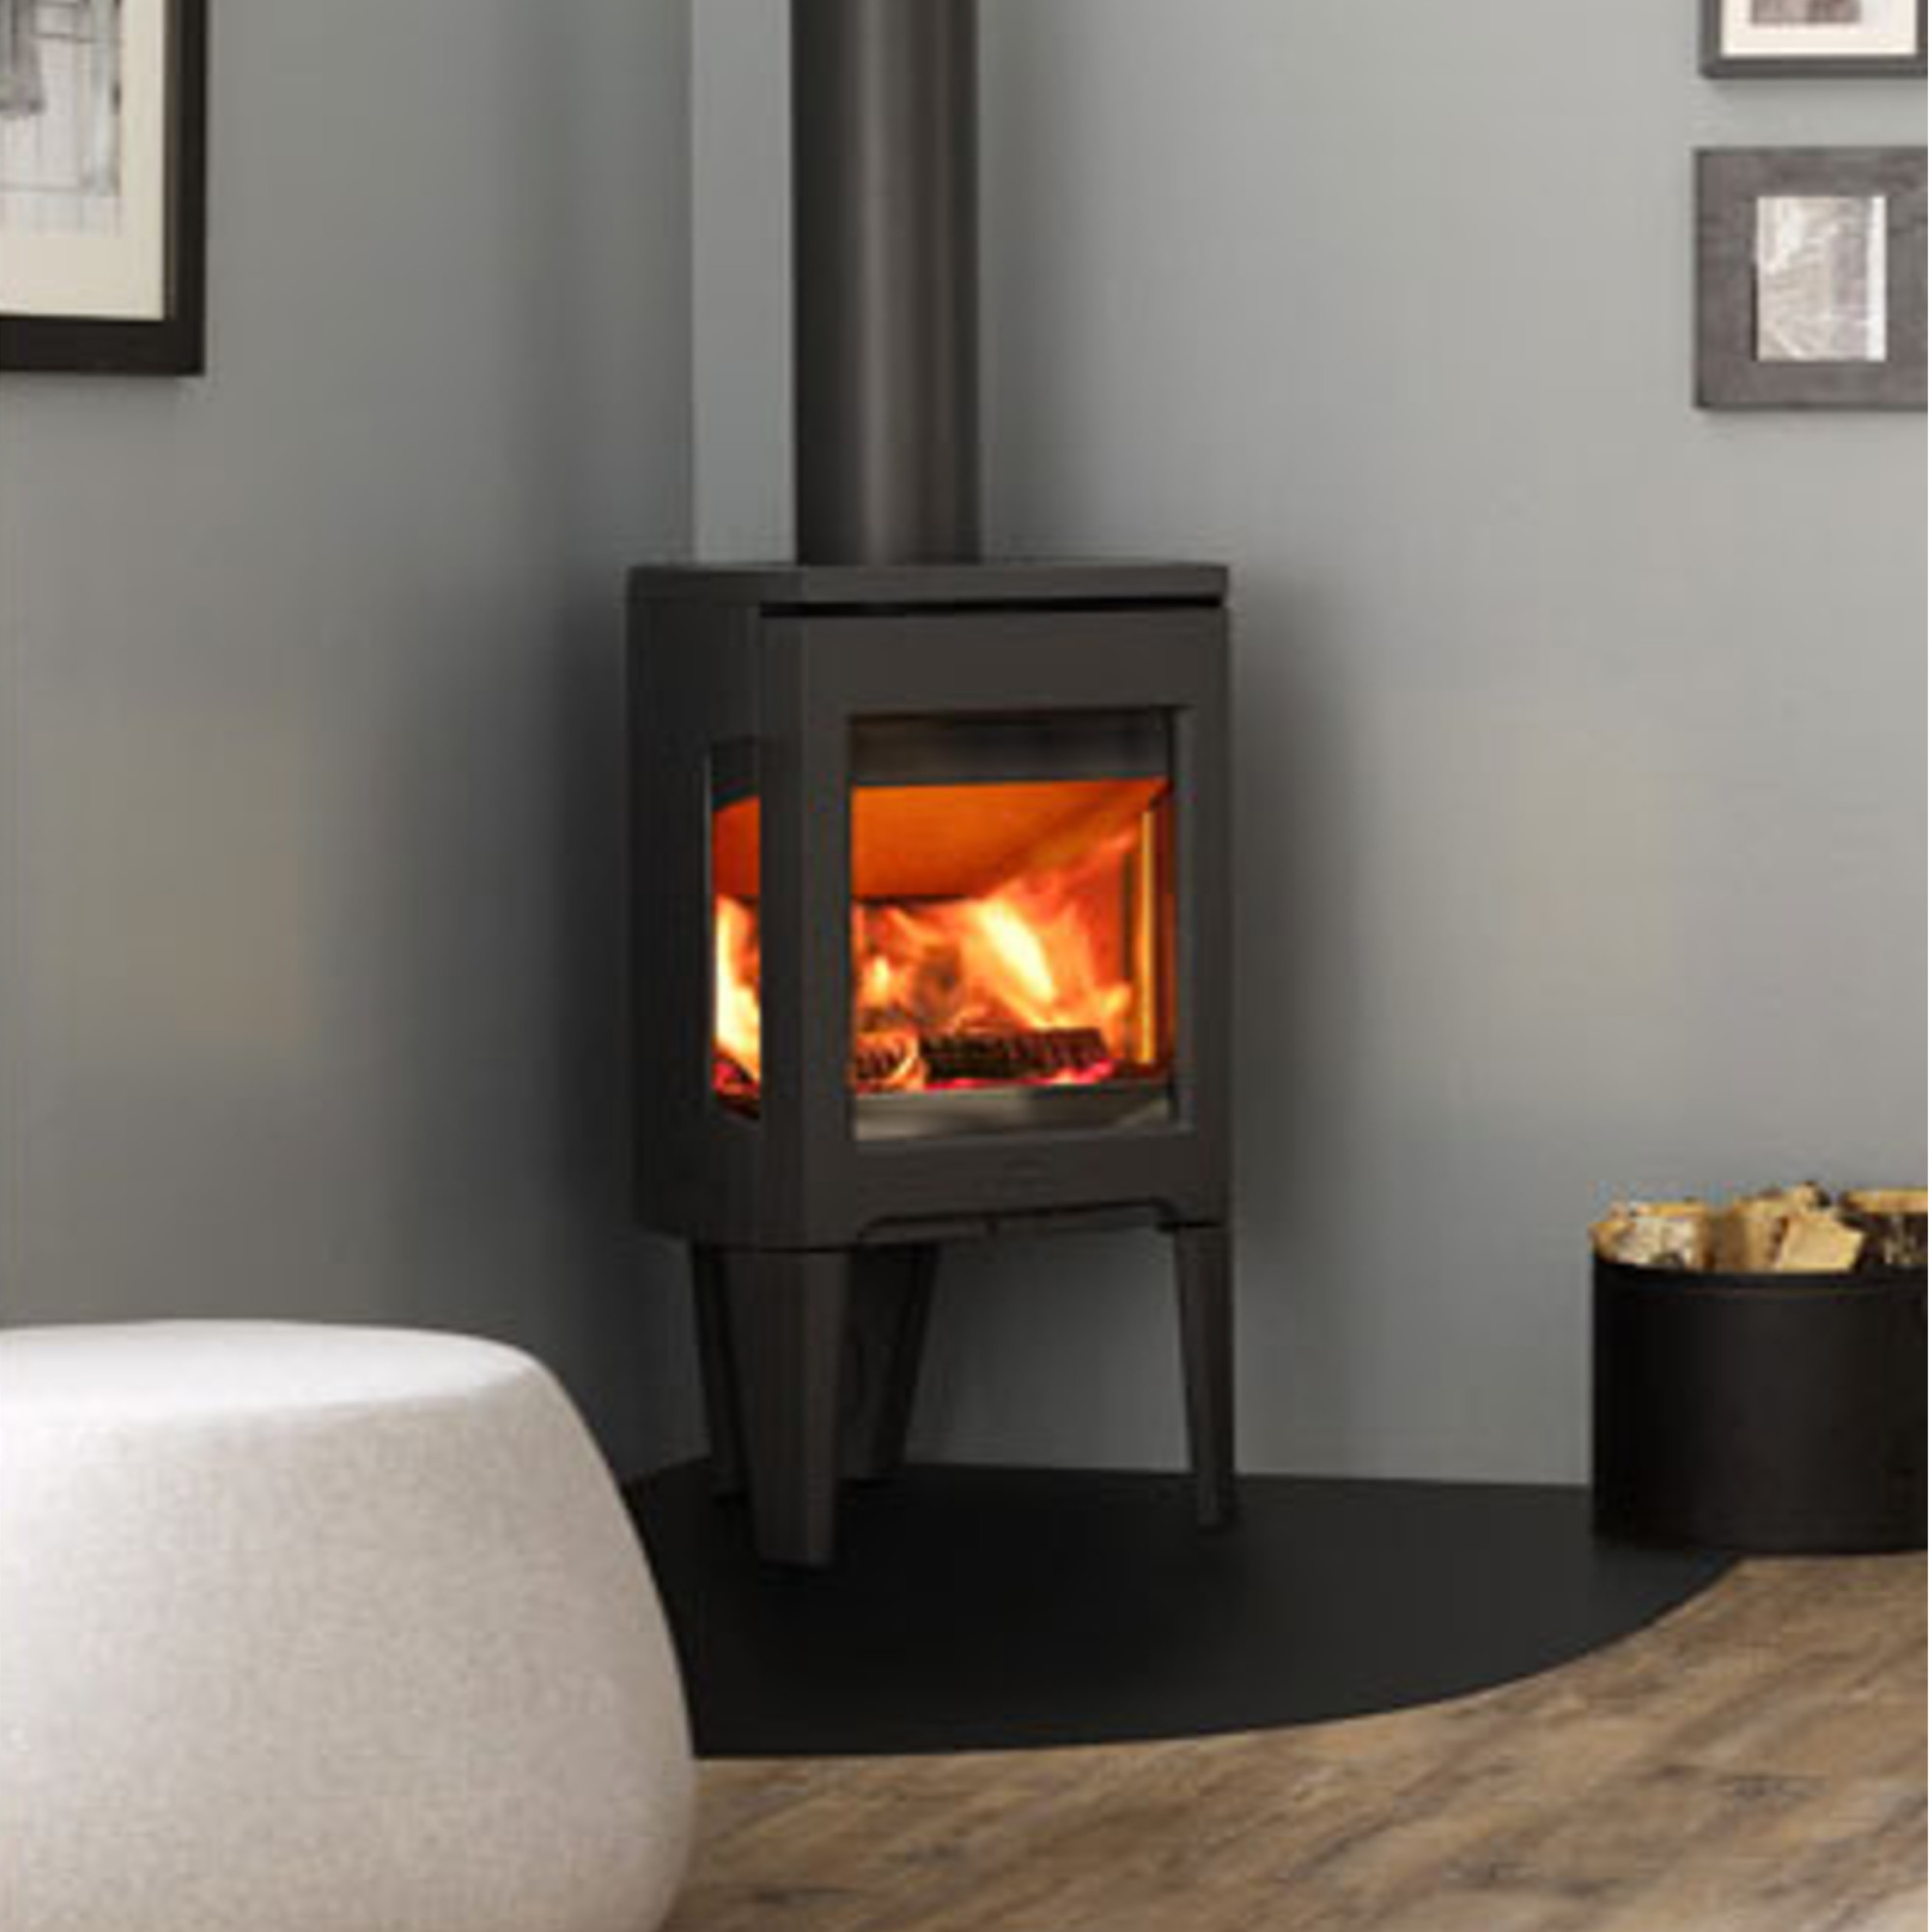 photo jotul fireplace images photo jotul fireplace. Black Bedroom Furniture Sets. Home Design Ideas